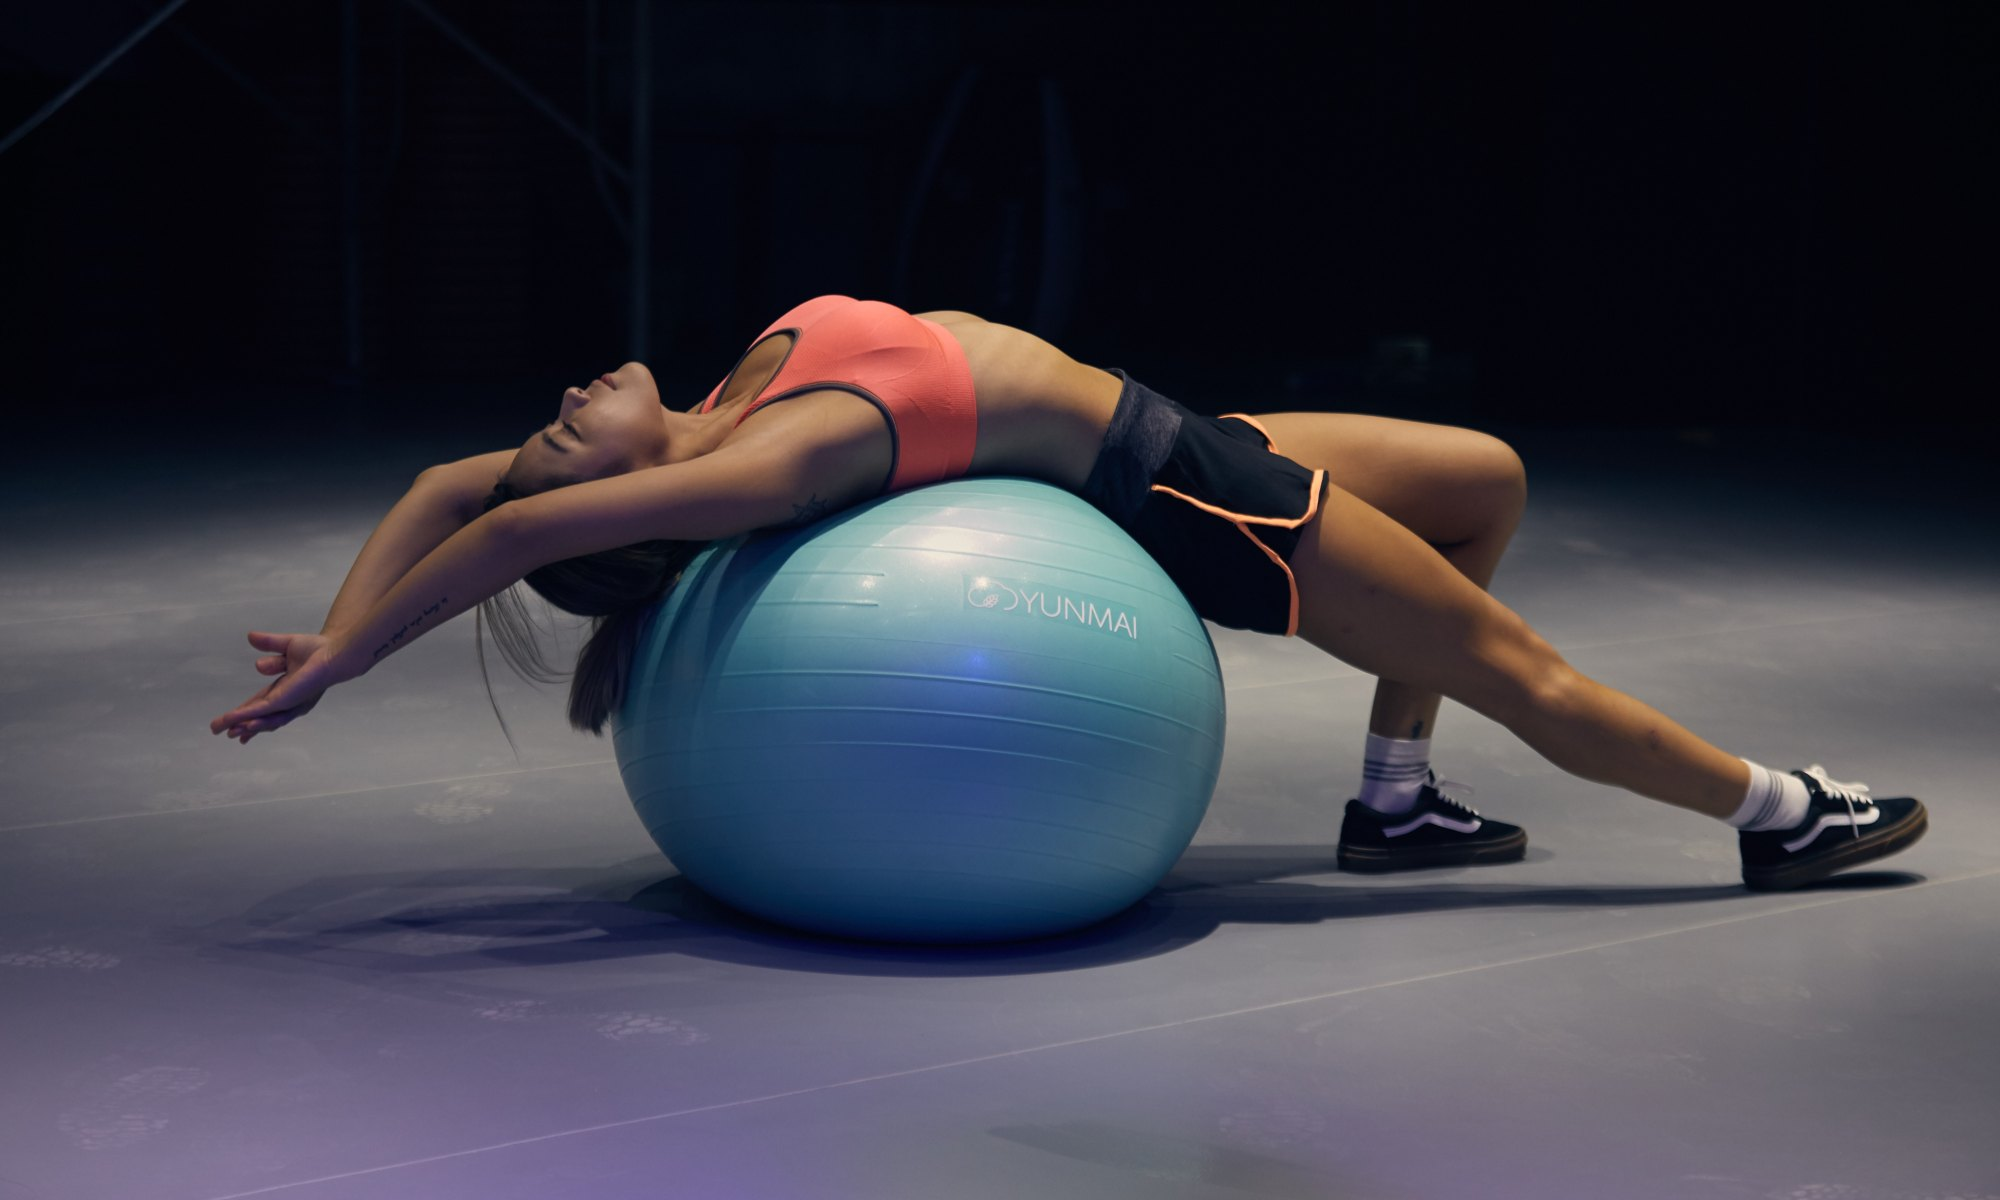 Motivated woman exercising and doing yoga on blue stability ball